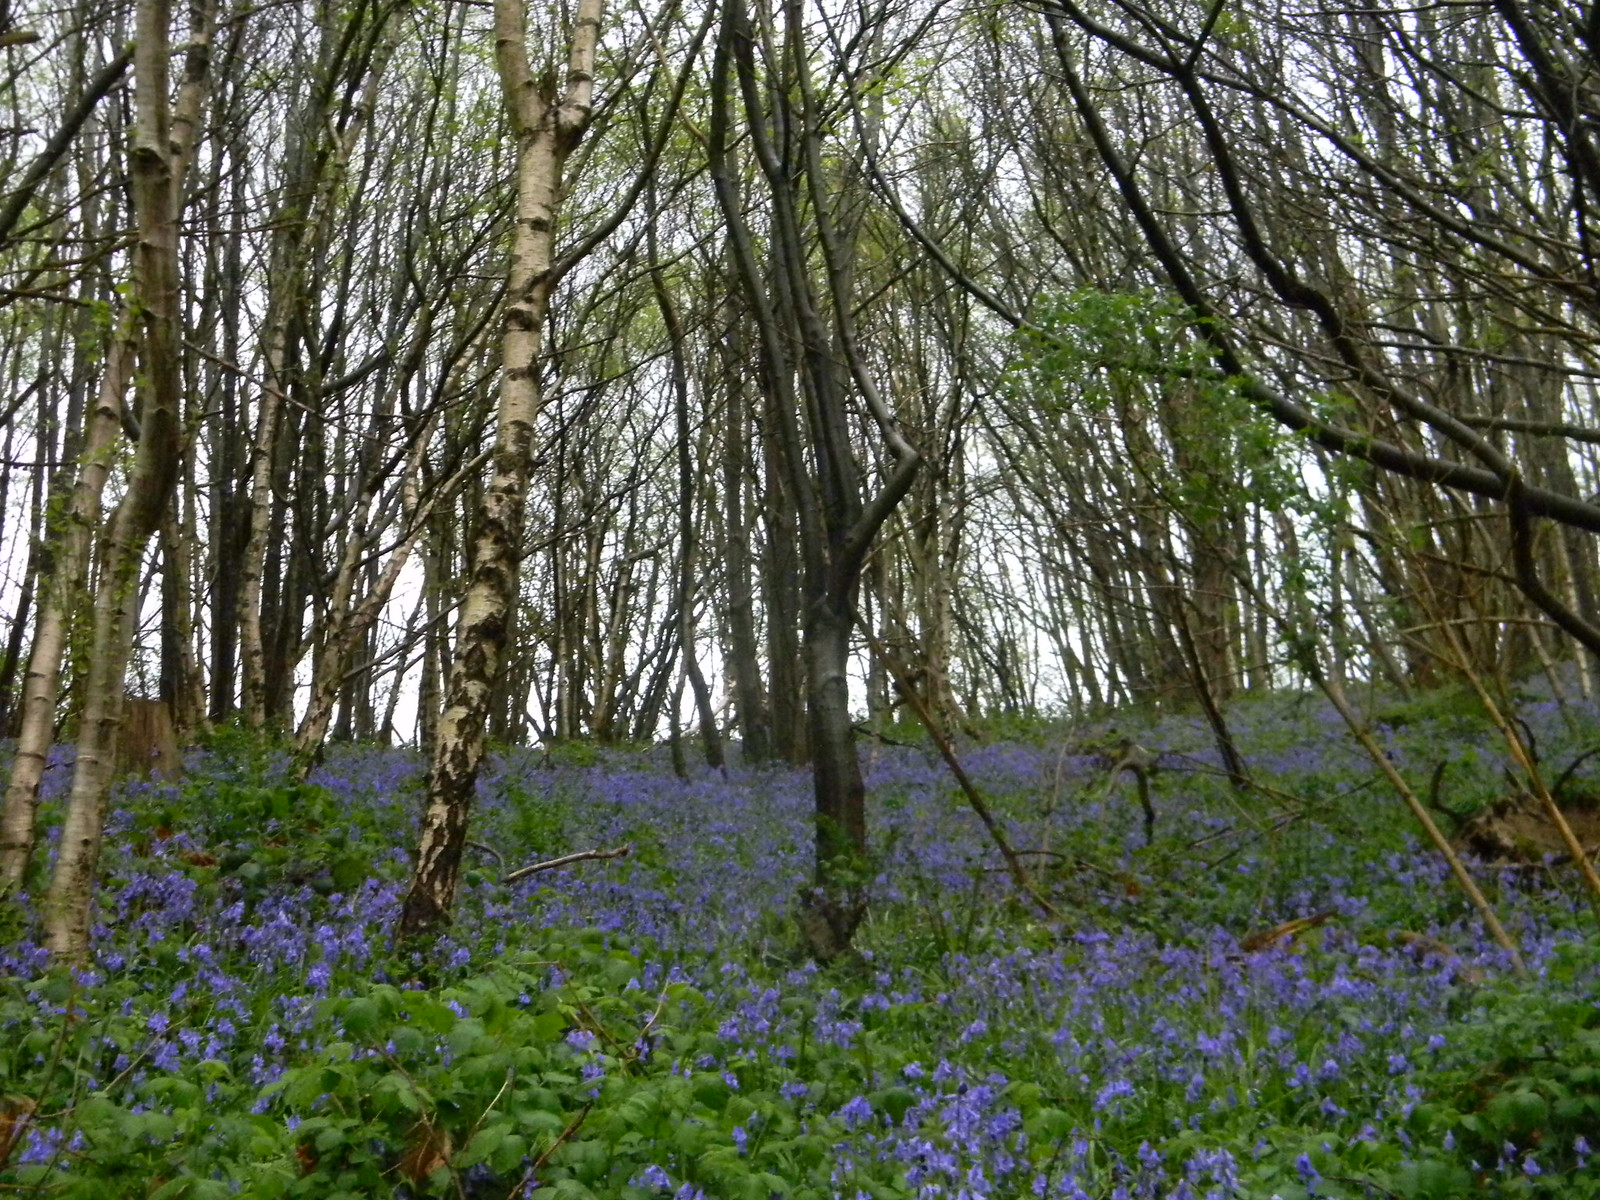 Bluebells Borough Green to Sevenoaks (composite walk)